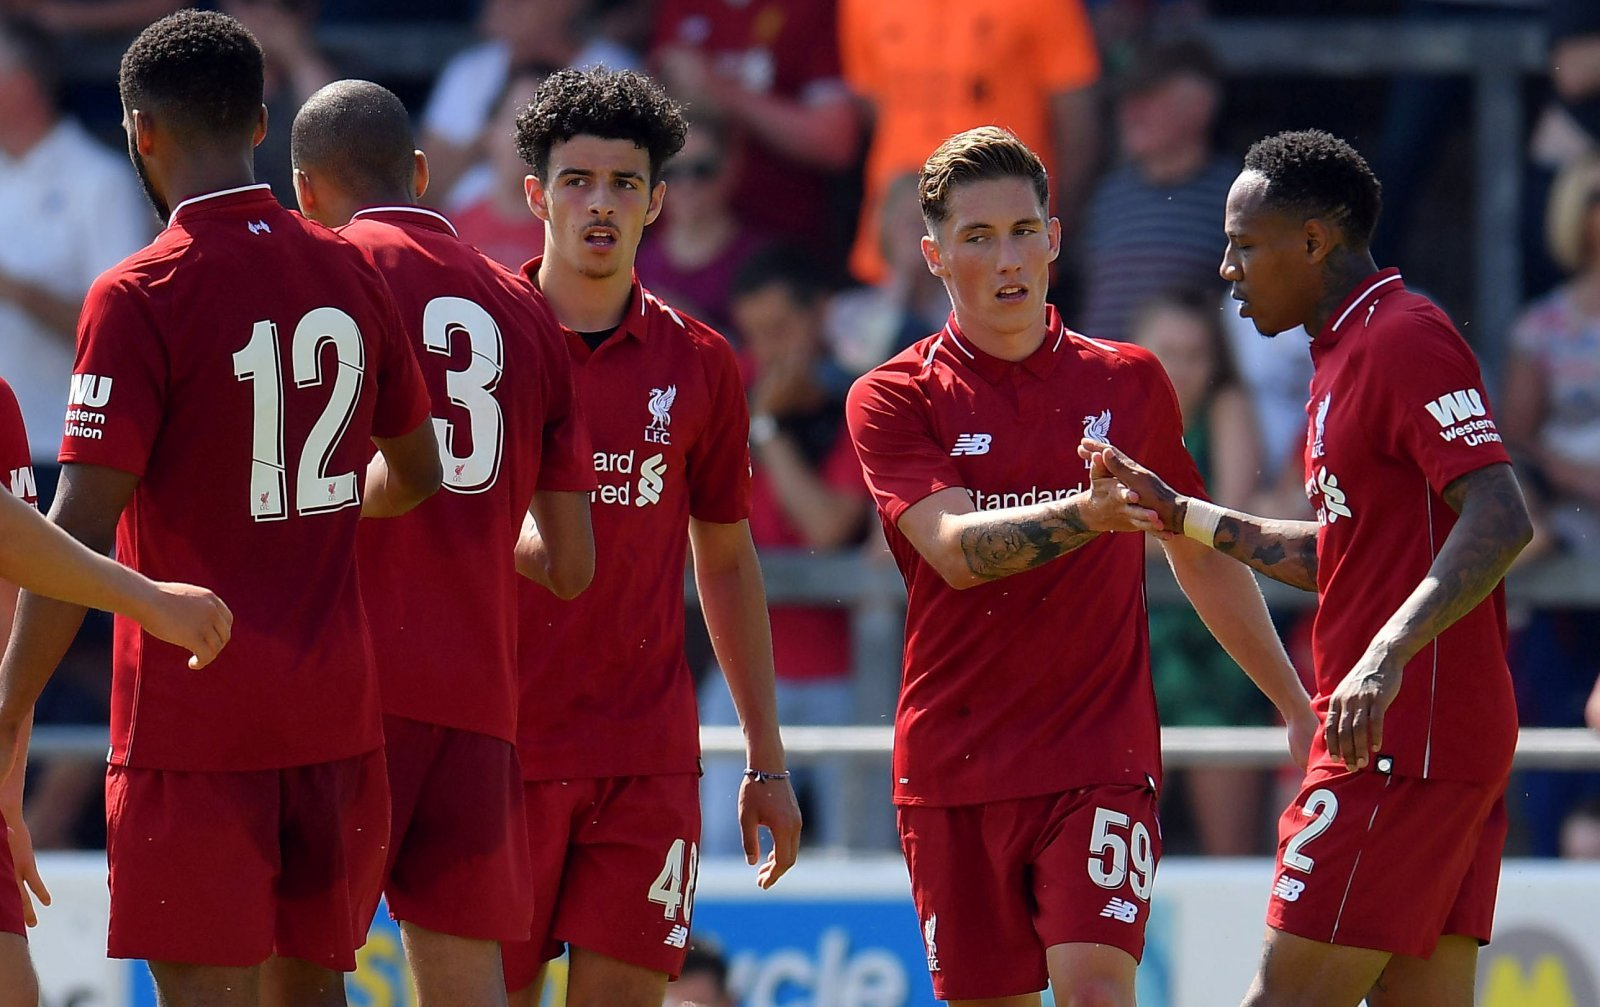 Liverpool: Harry Wilson deserves at least a shot in pre-season